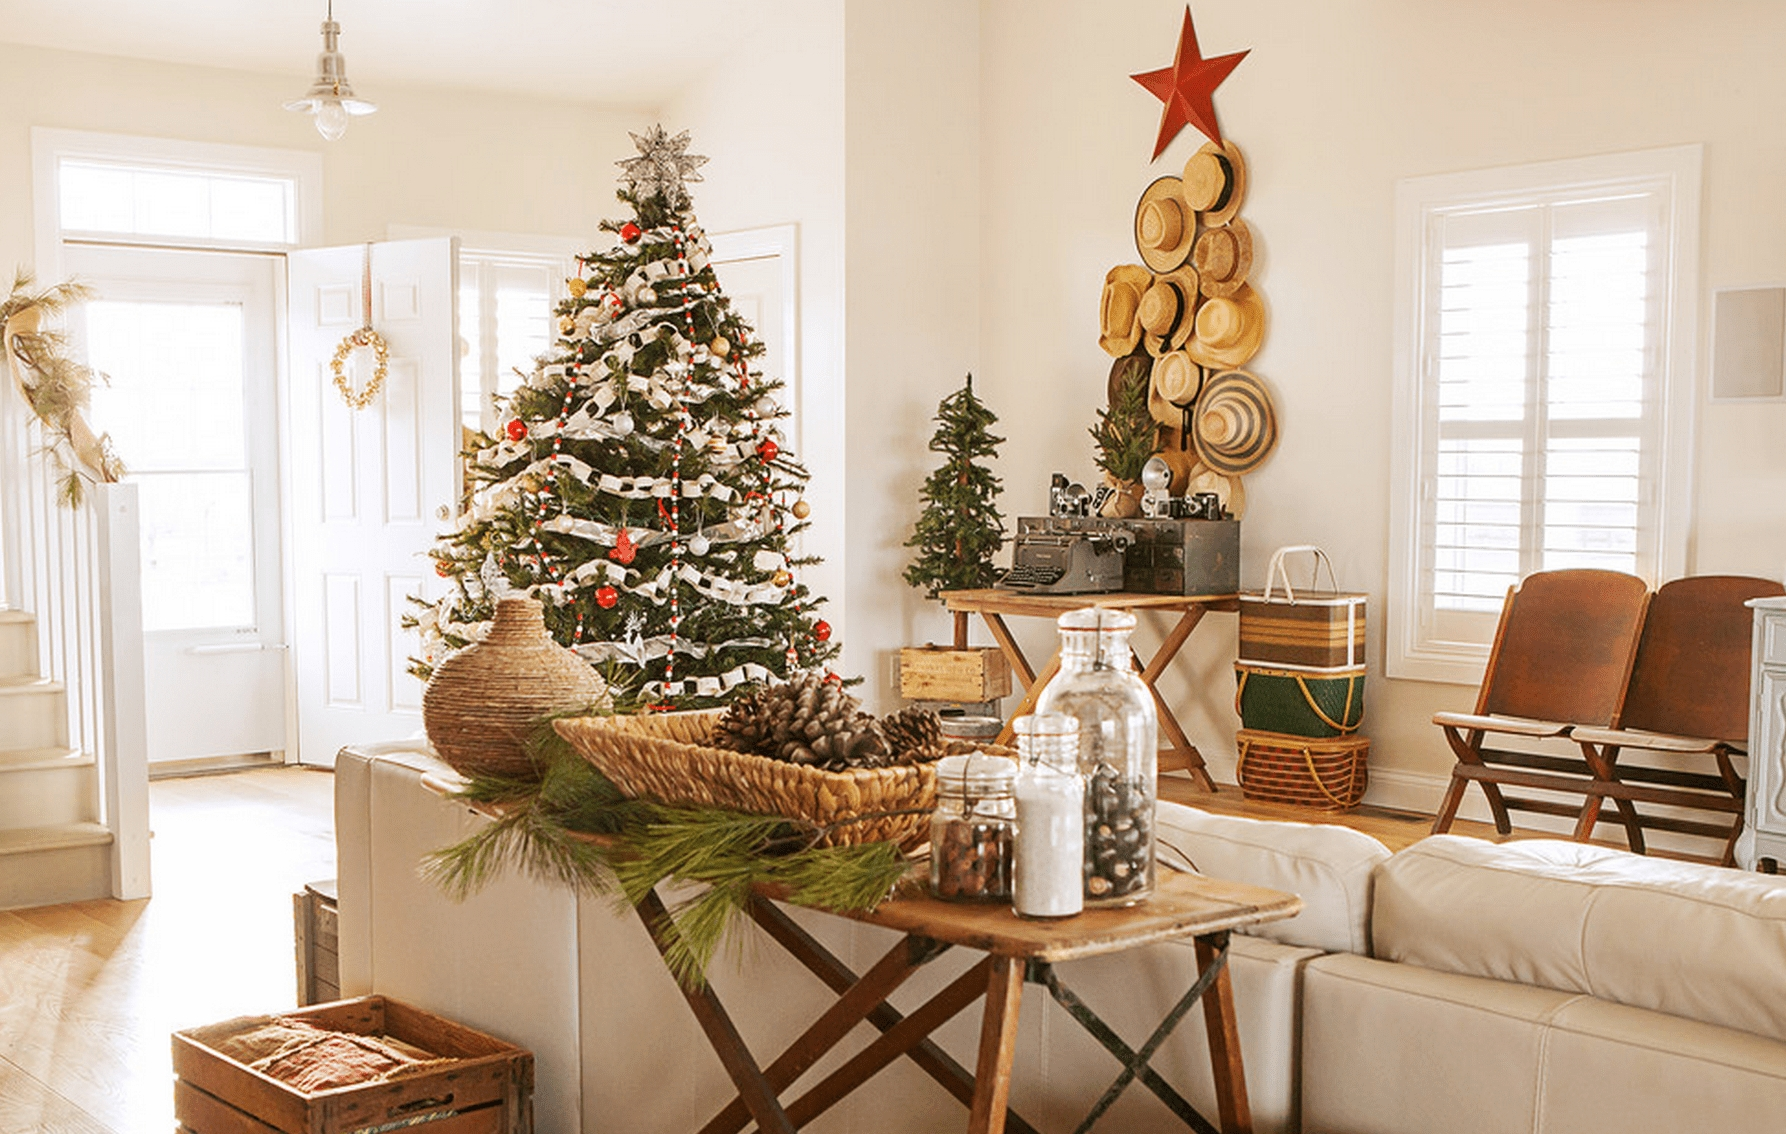 10 Pretty Christmas Decorations Ideas For Living Room 15 beautiful ways to decorate the living room for christmas 2021